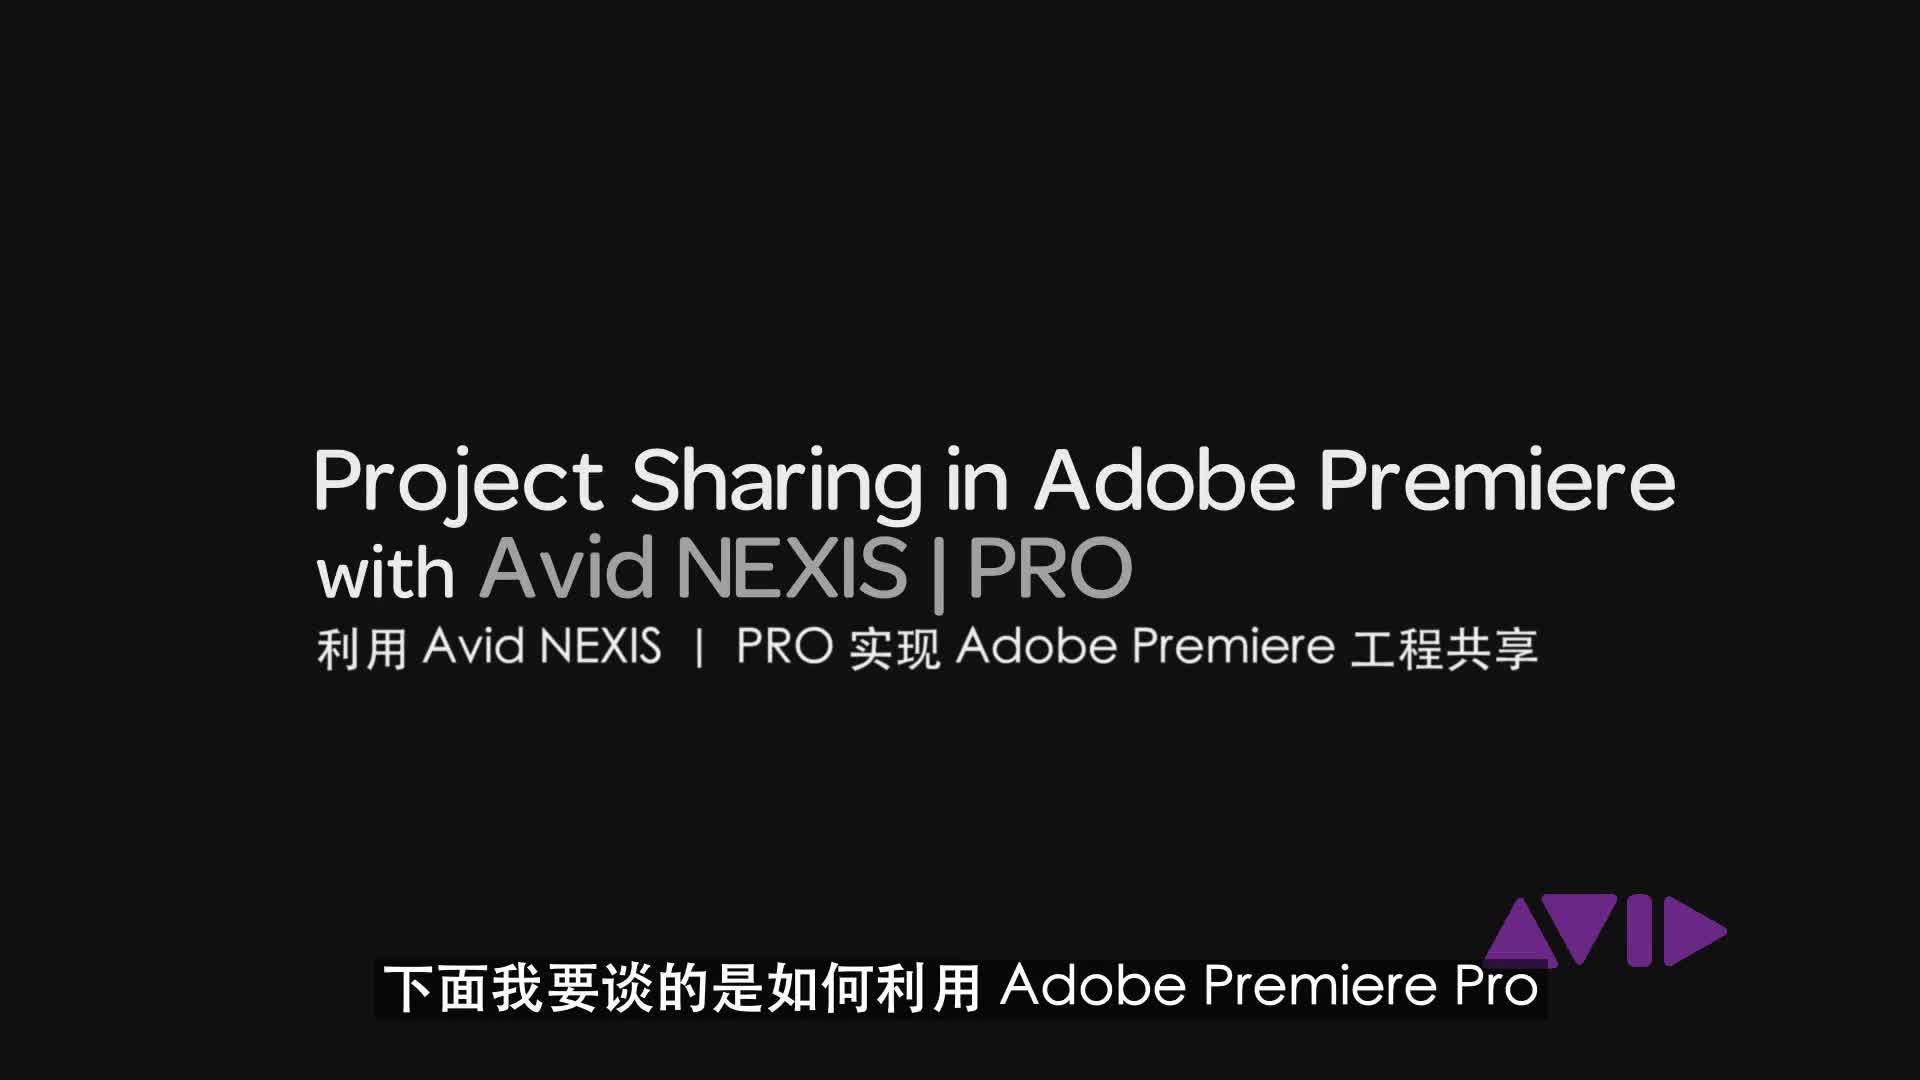 Project Sharing in Adobe Premiere with Avid NEXIS Pro